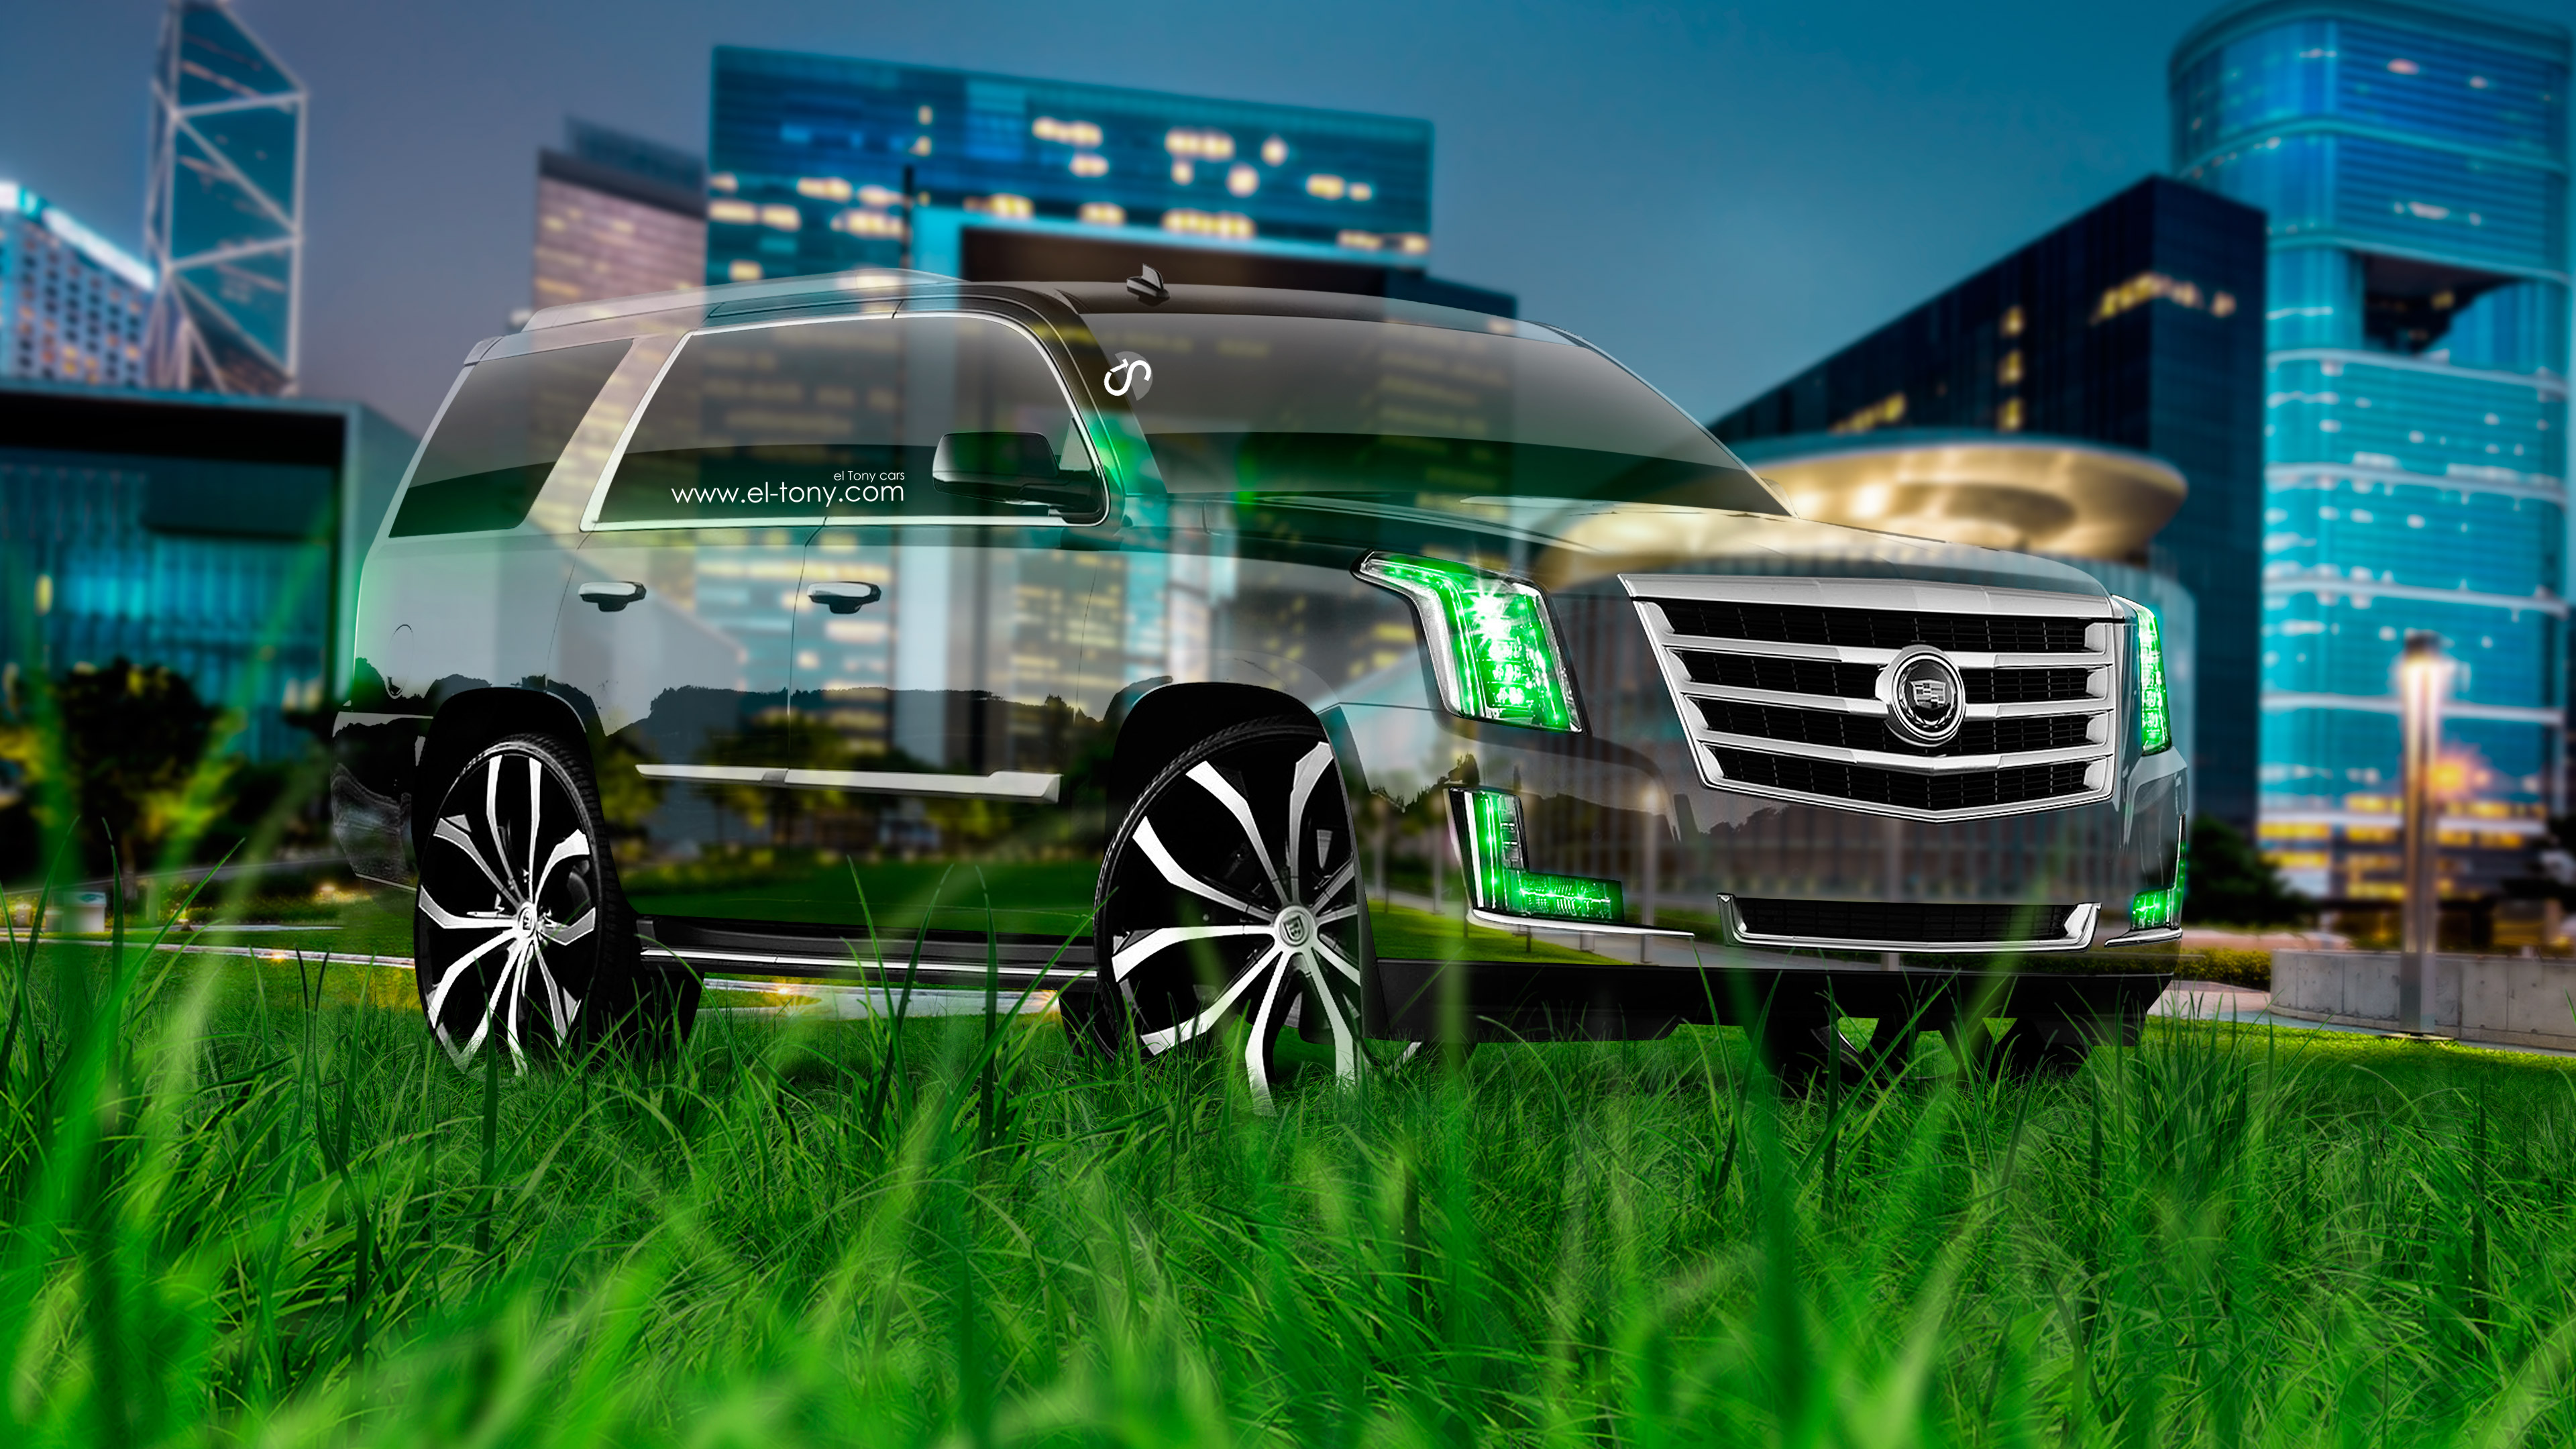 Cadillac-Escalade-Tuning-Crystal-Nature-City-Night-Car-2015-Fantasy-Green-Grass-Style-4K-Wallpapers-design-by-Tony-Kokhan-www.el-tony.com-image